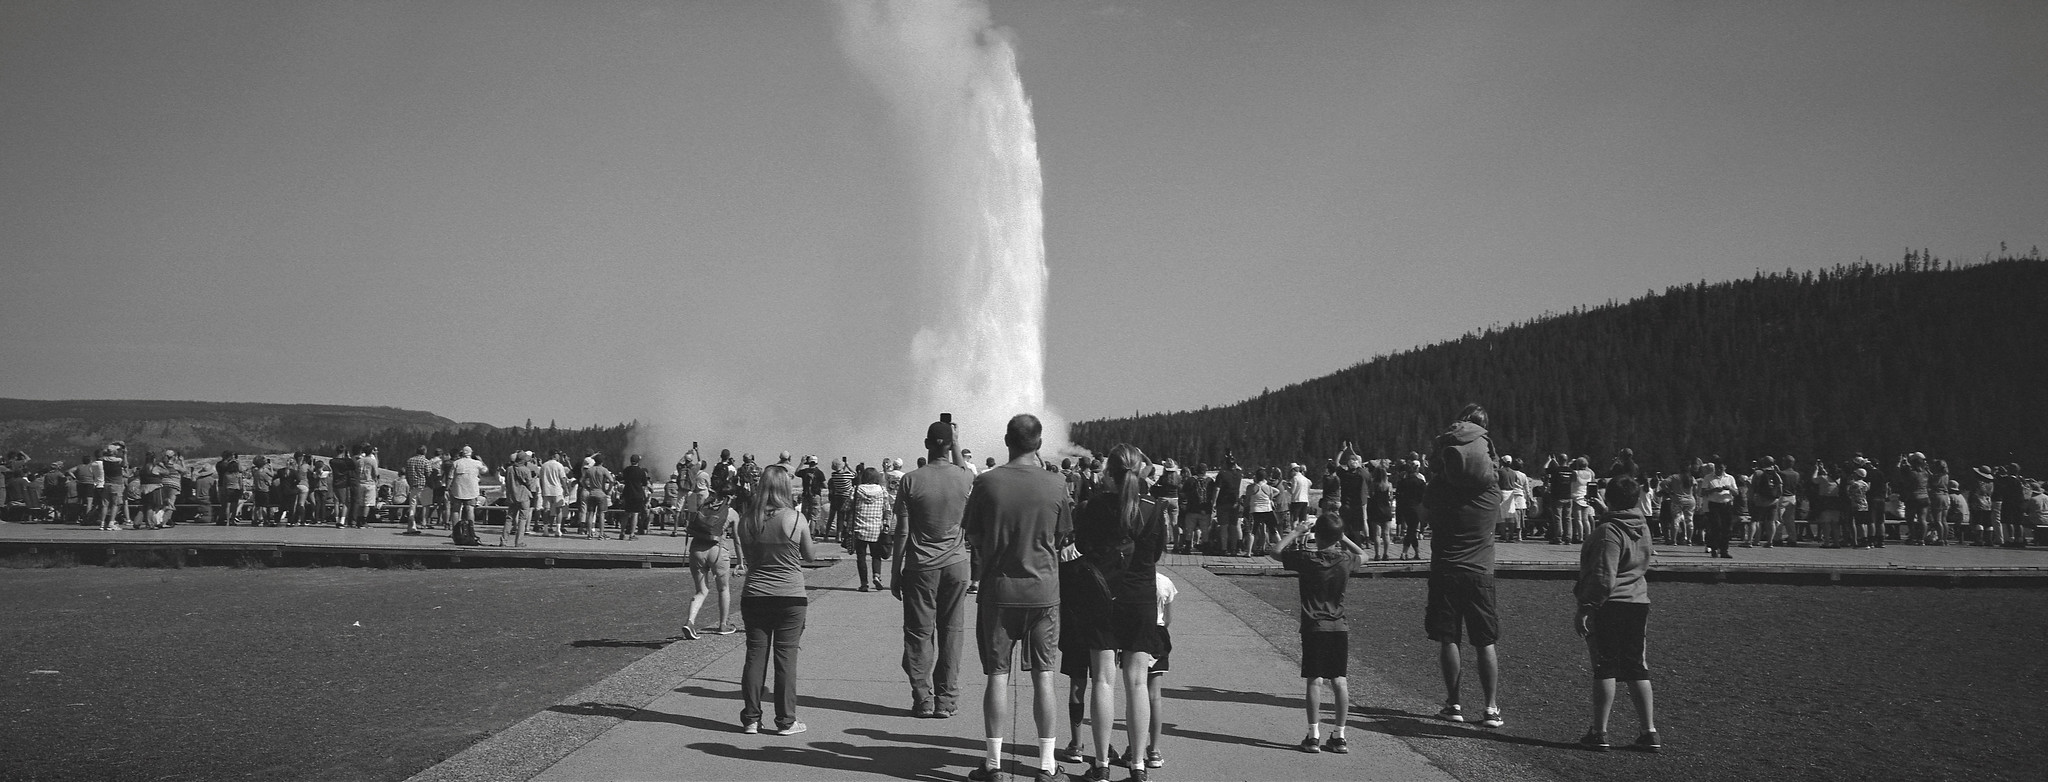 Old Faithful, Yellowstone National Park | by austin granger